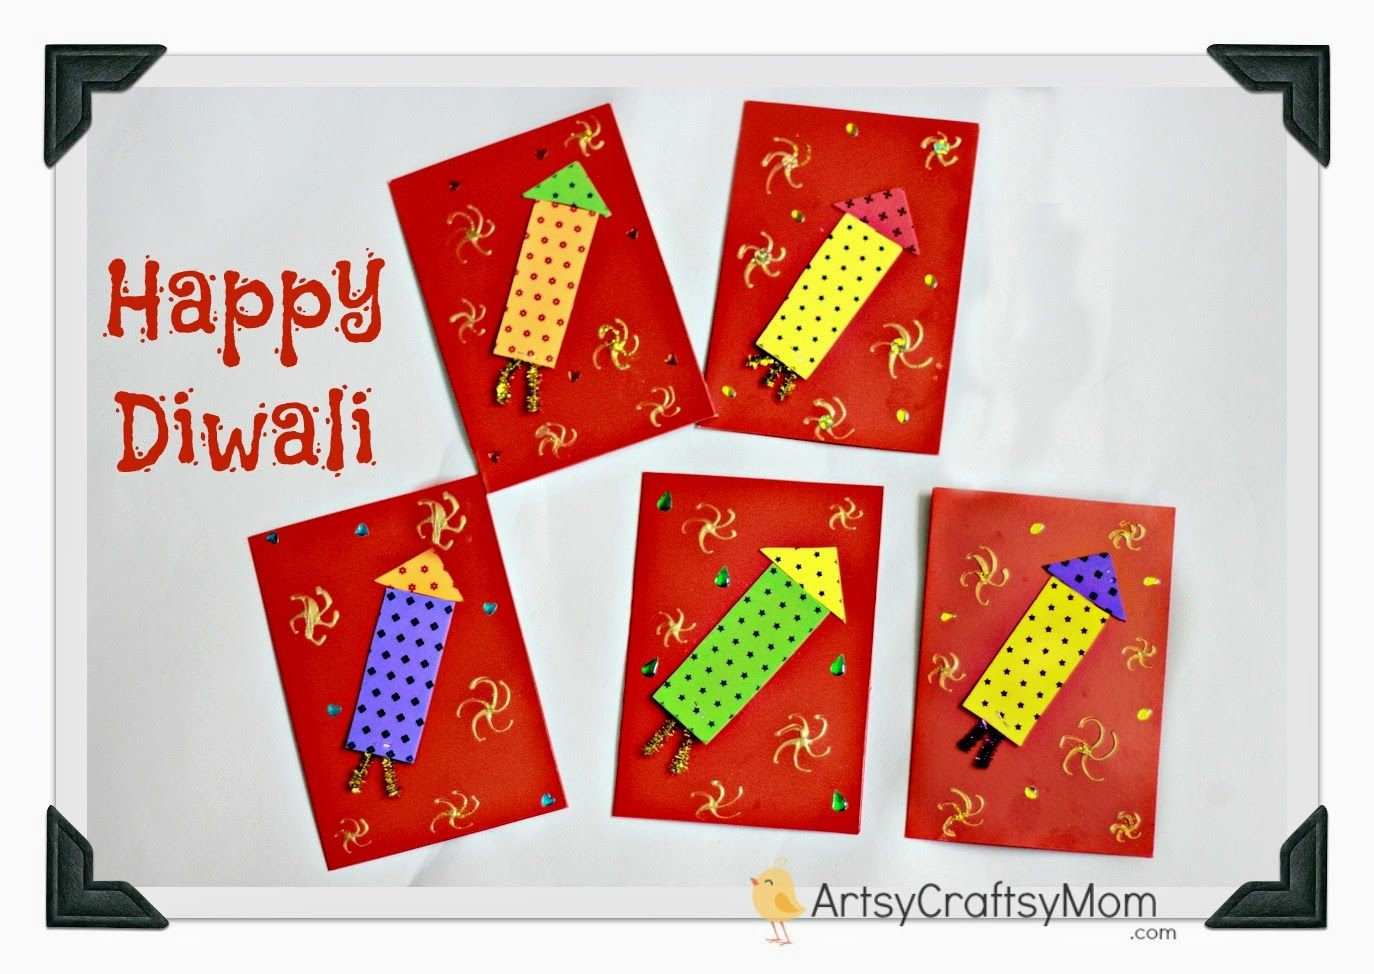 Card Making Ideas For Children Part - 28: 15+ Diwali Card Making Ideas - Diwali Dhamaka | Artsy Craftsy Mom